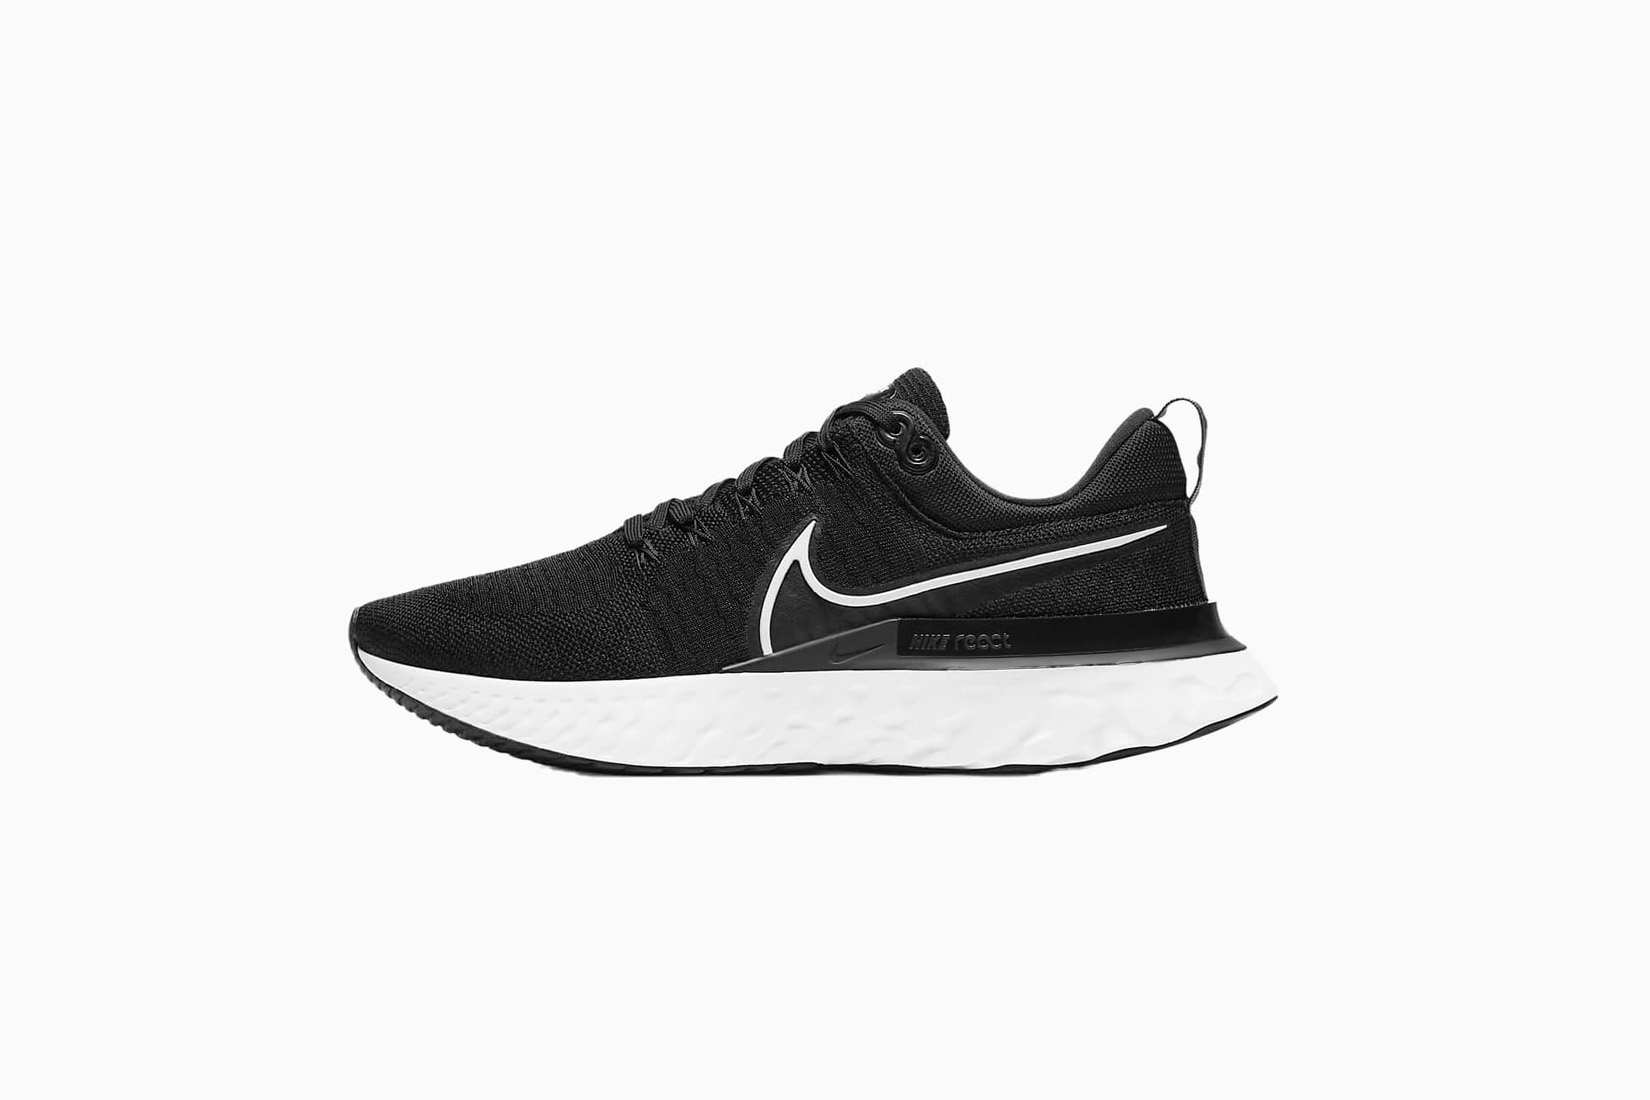 best workout shoes women nike air react review - Luxe Digital